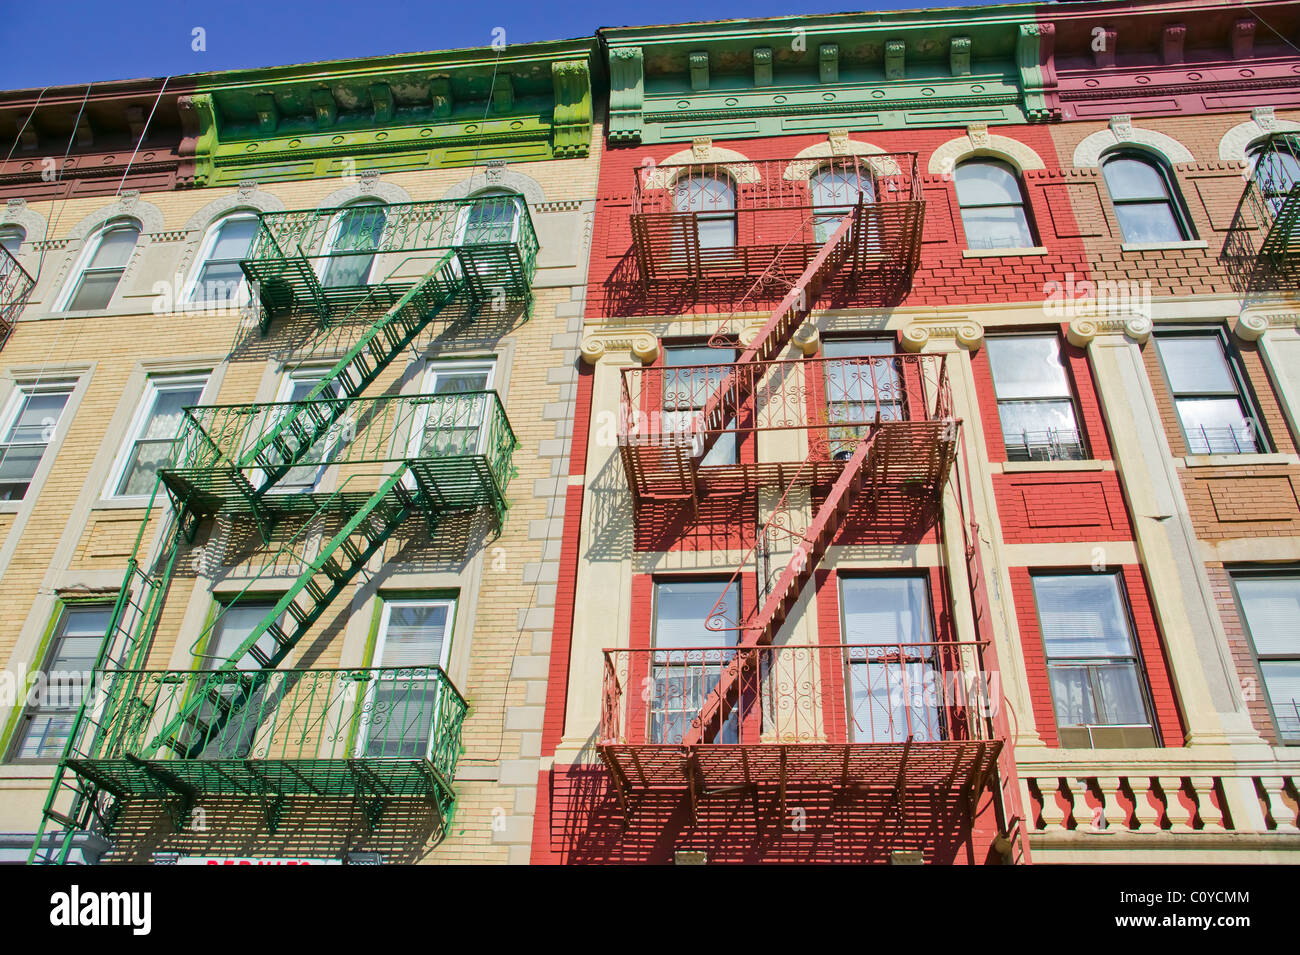 Colorful Row Houses in Brooklyn, New York - Stock Image